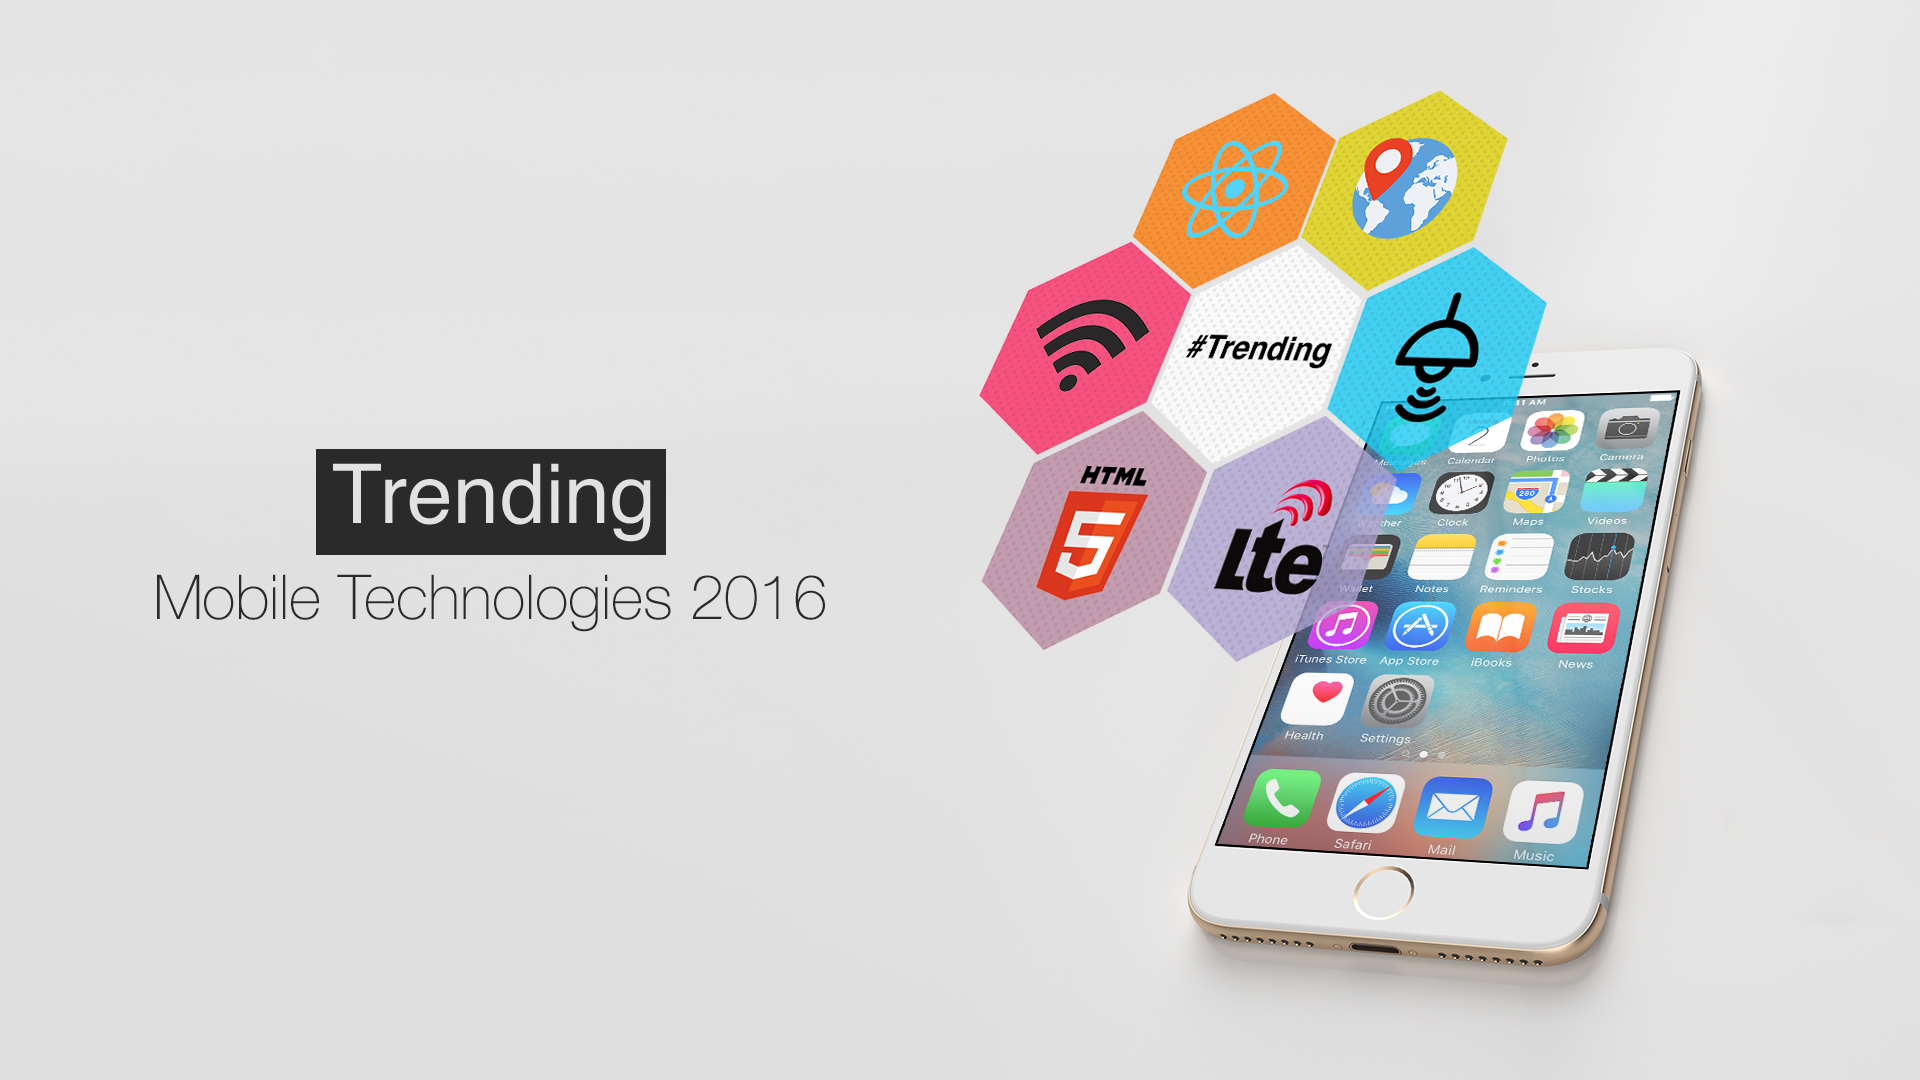 Trending mobile technologies for 2016